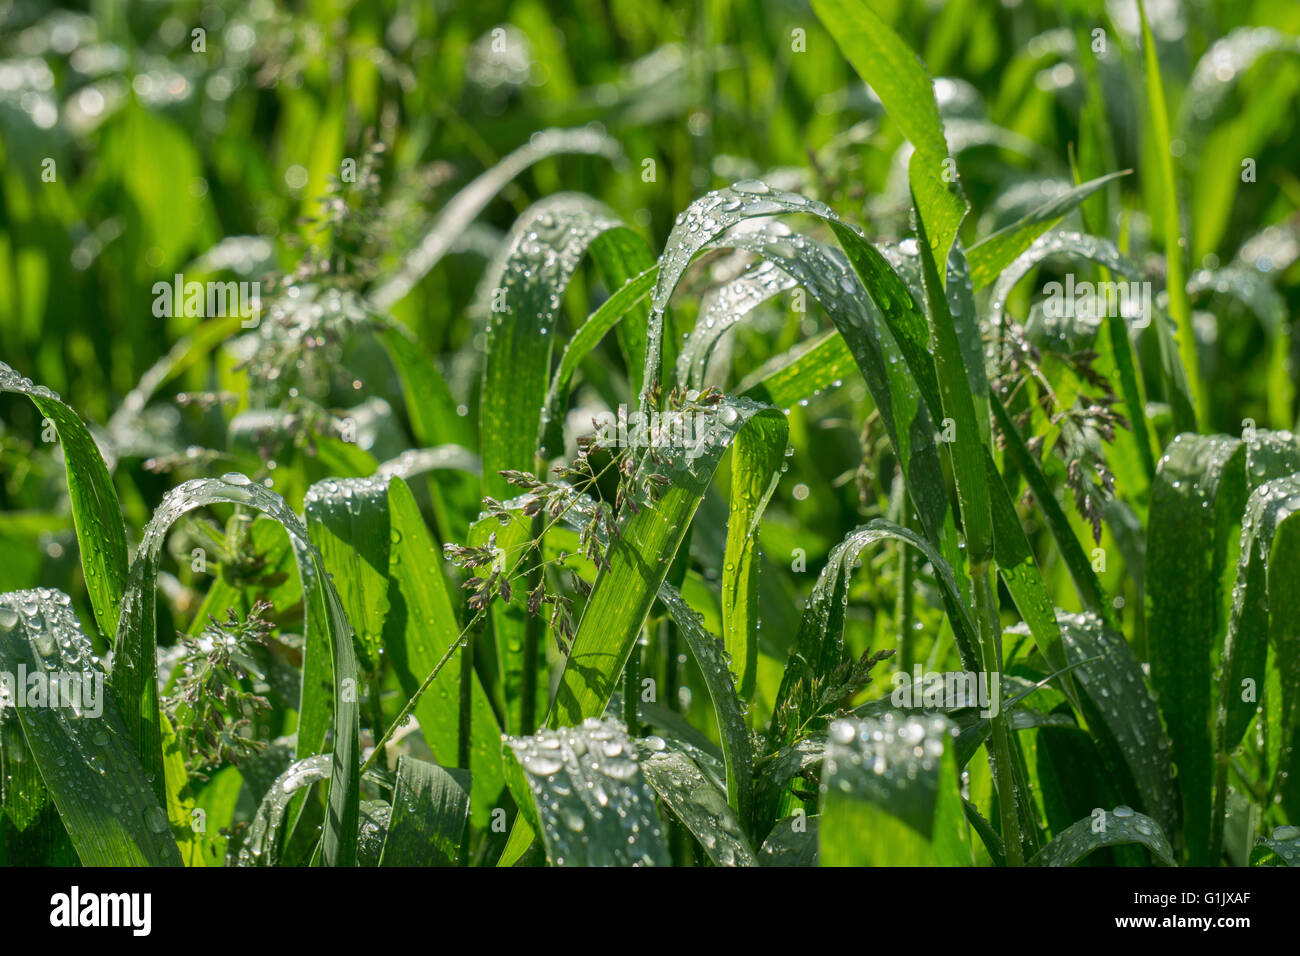 Rain drops on young green wheat leaves after a heavy rain. - Stock Image